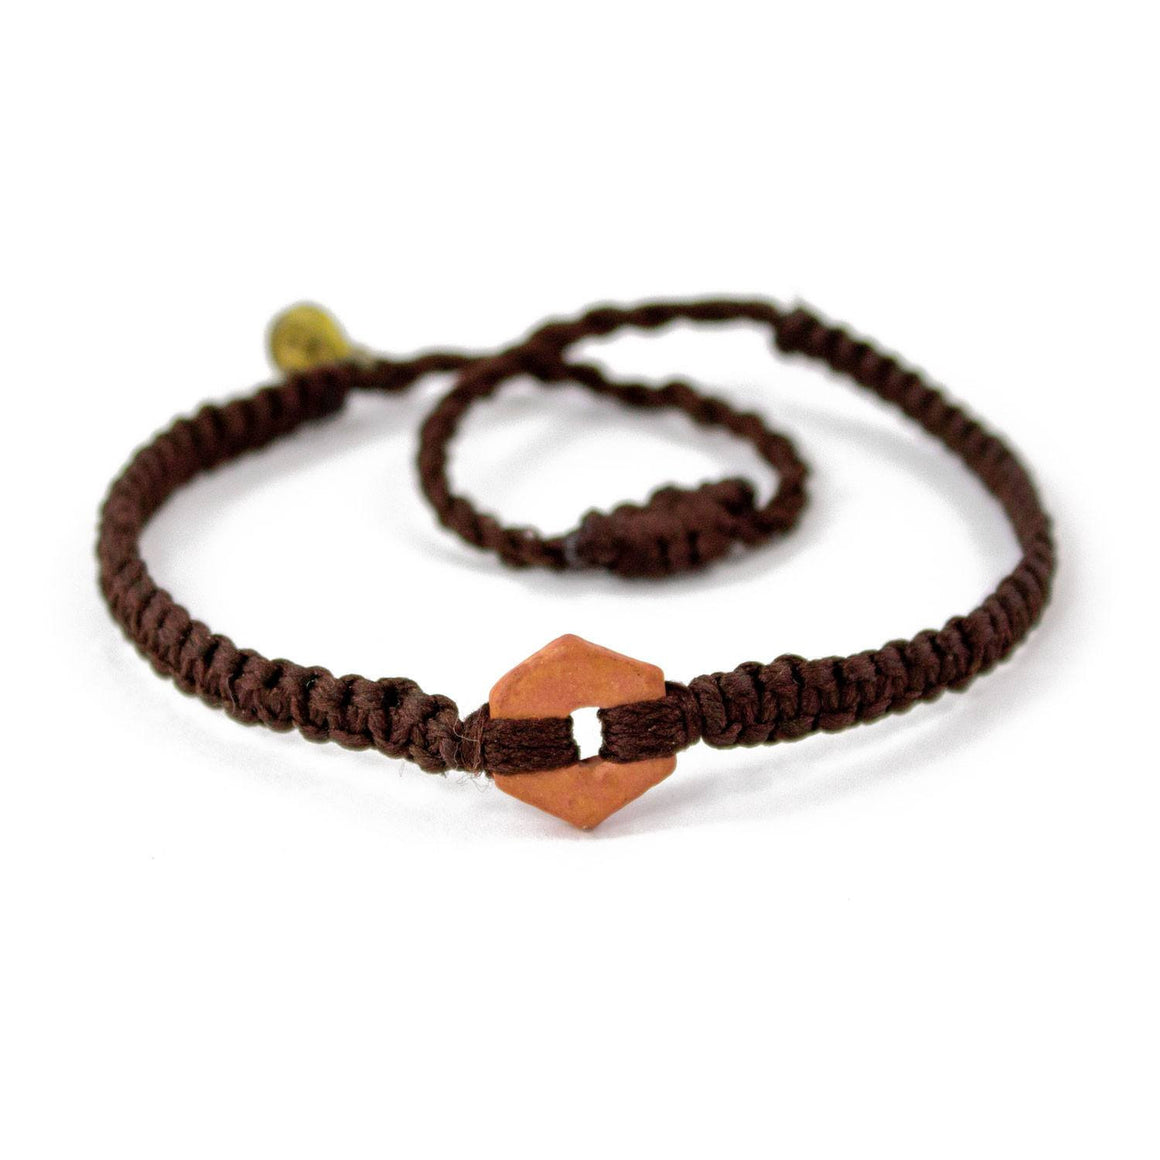 Brown Rustic Chocolate Brown handmade ethnic bracelets cover